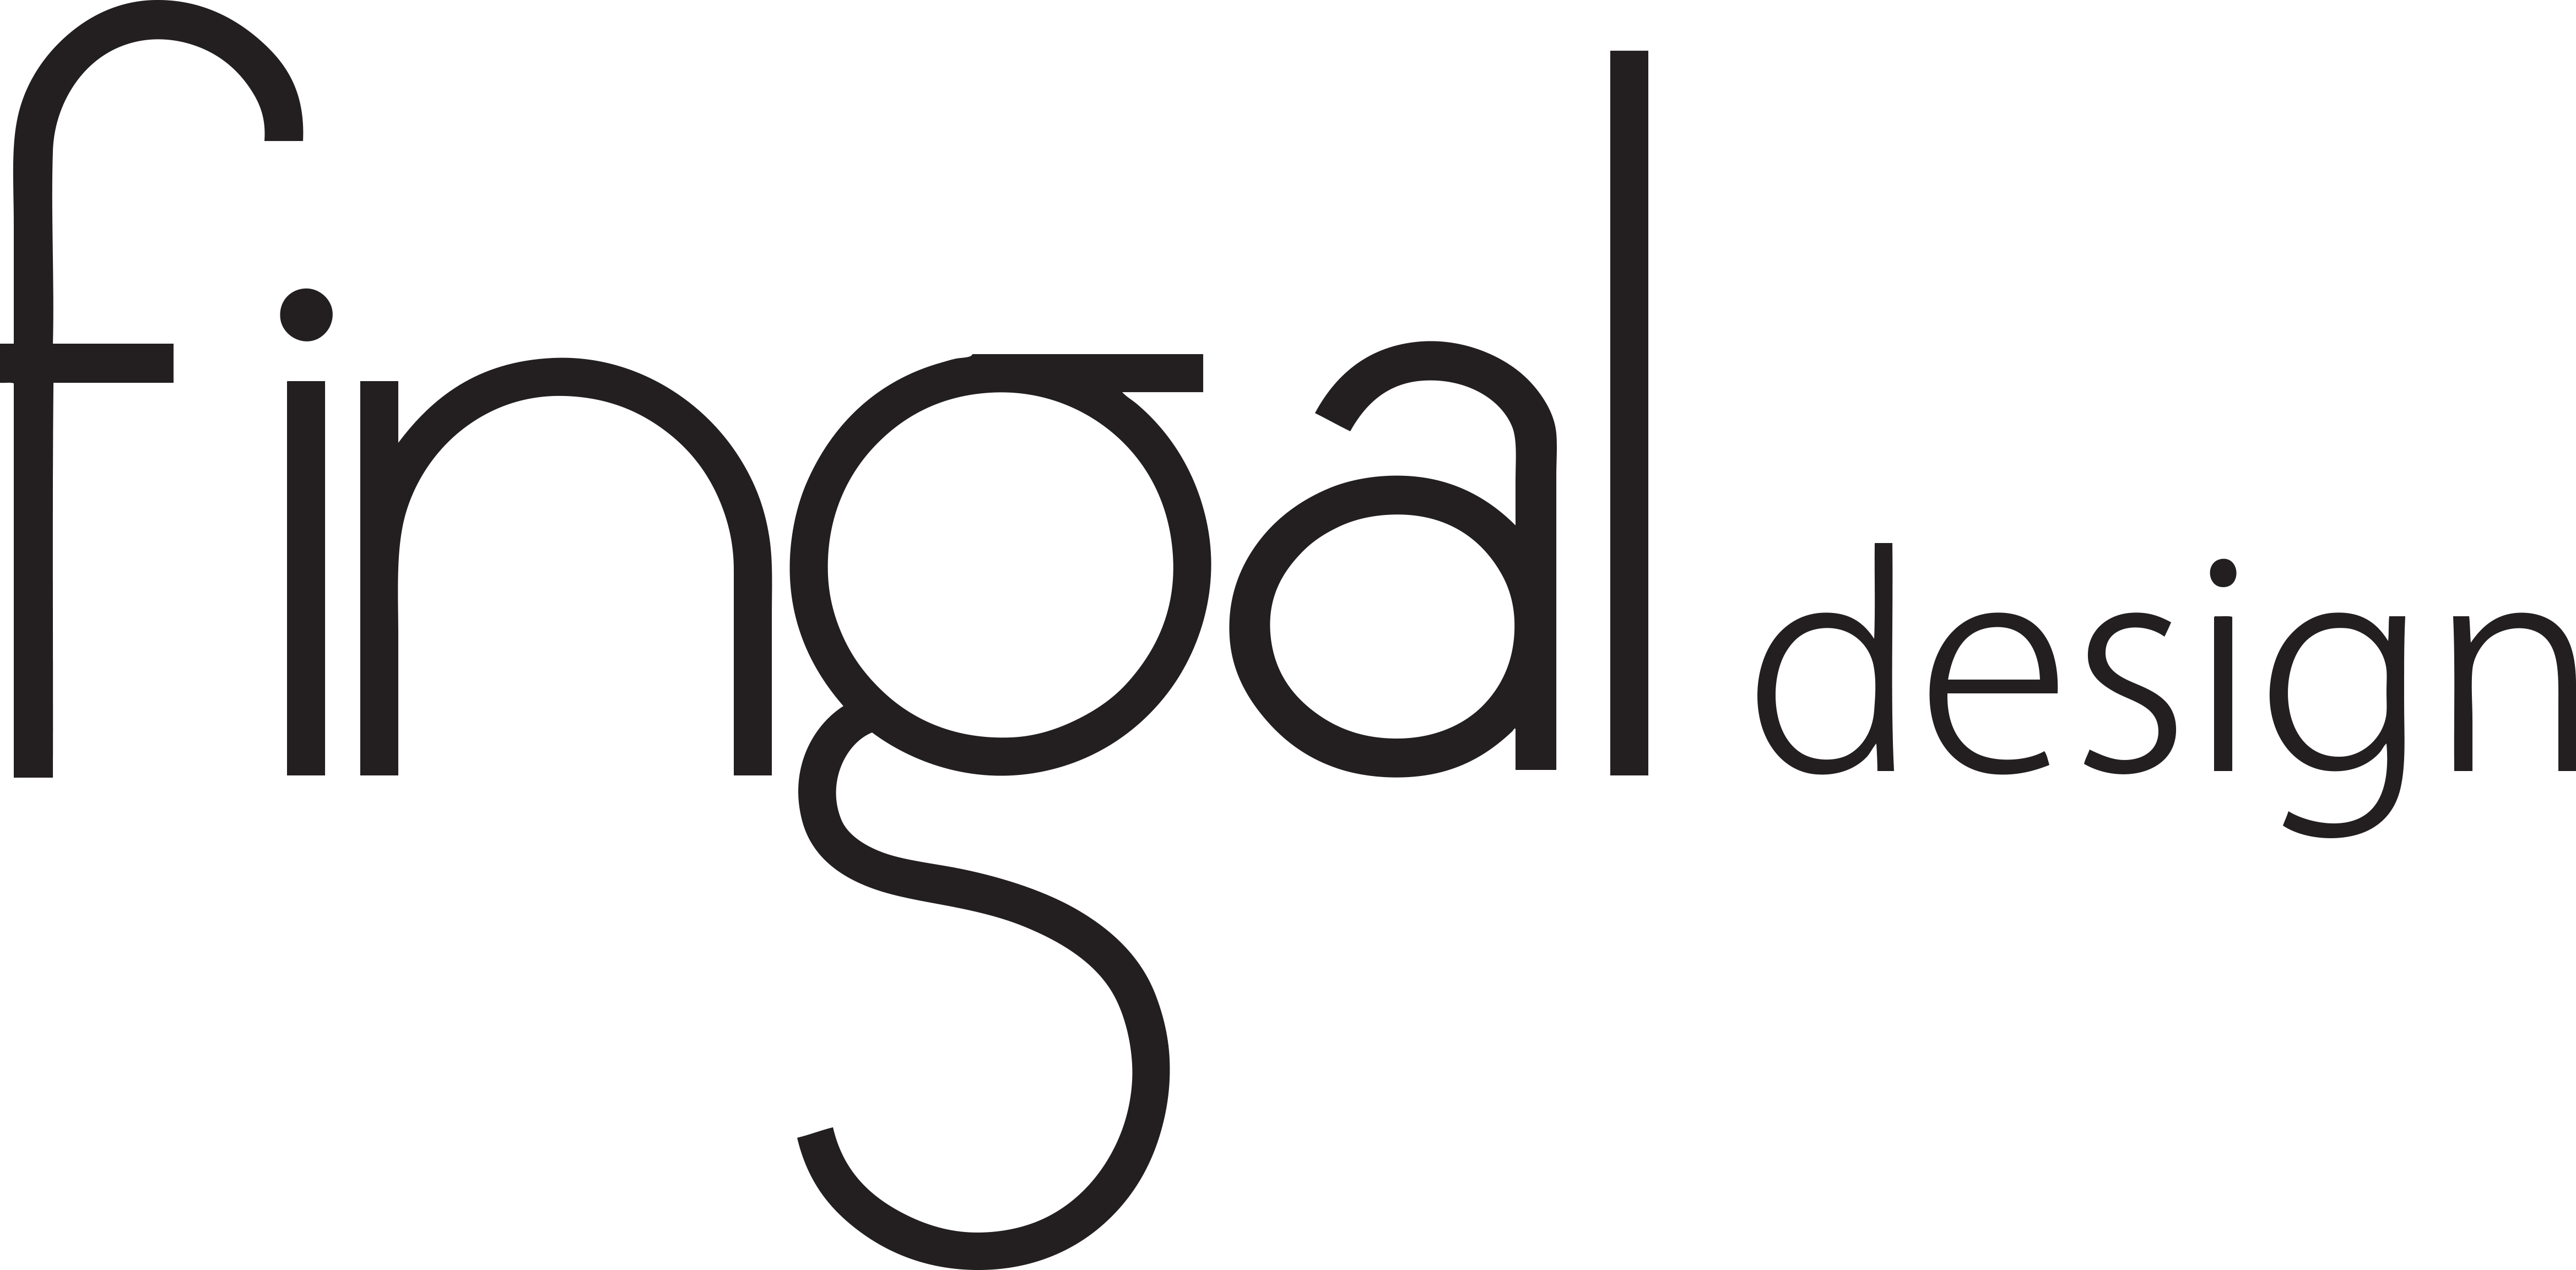 Fingal Design